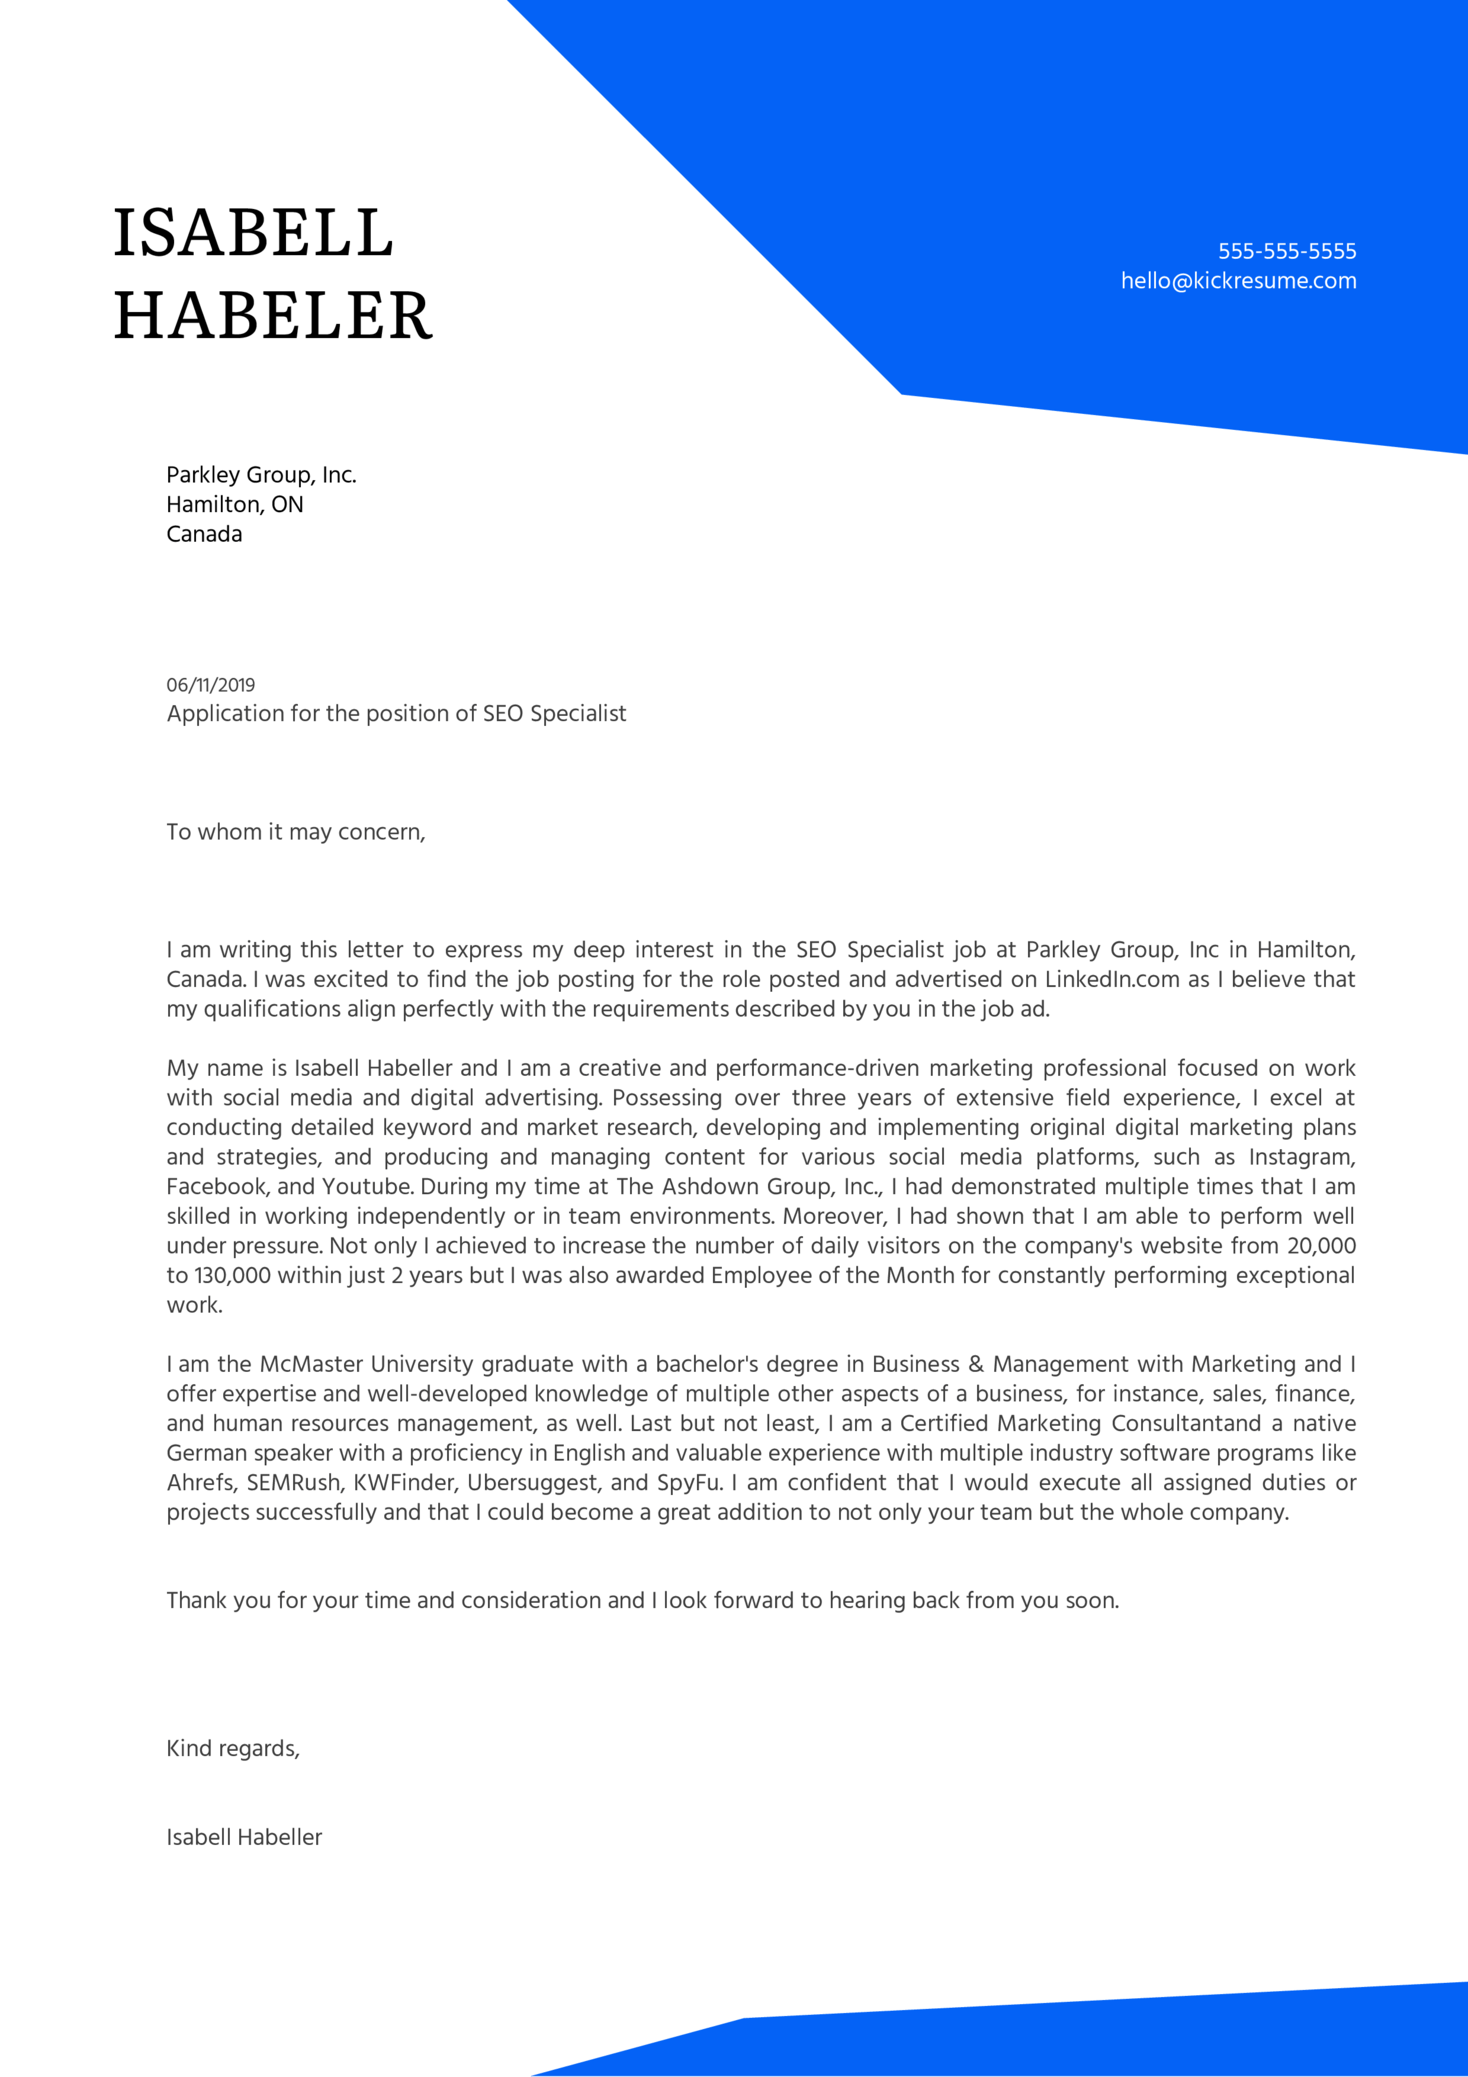 SEO Specialist Cover Letter Sample